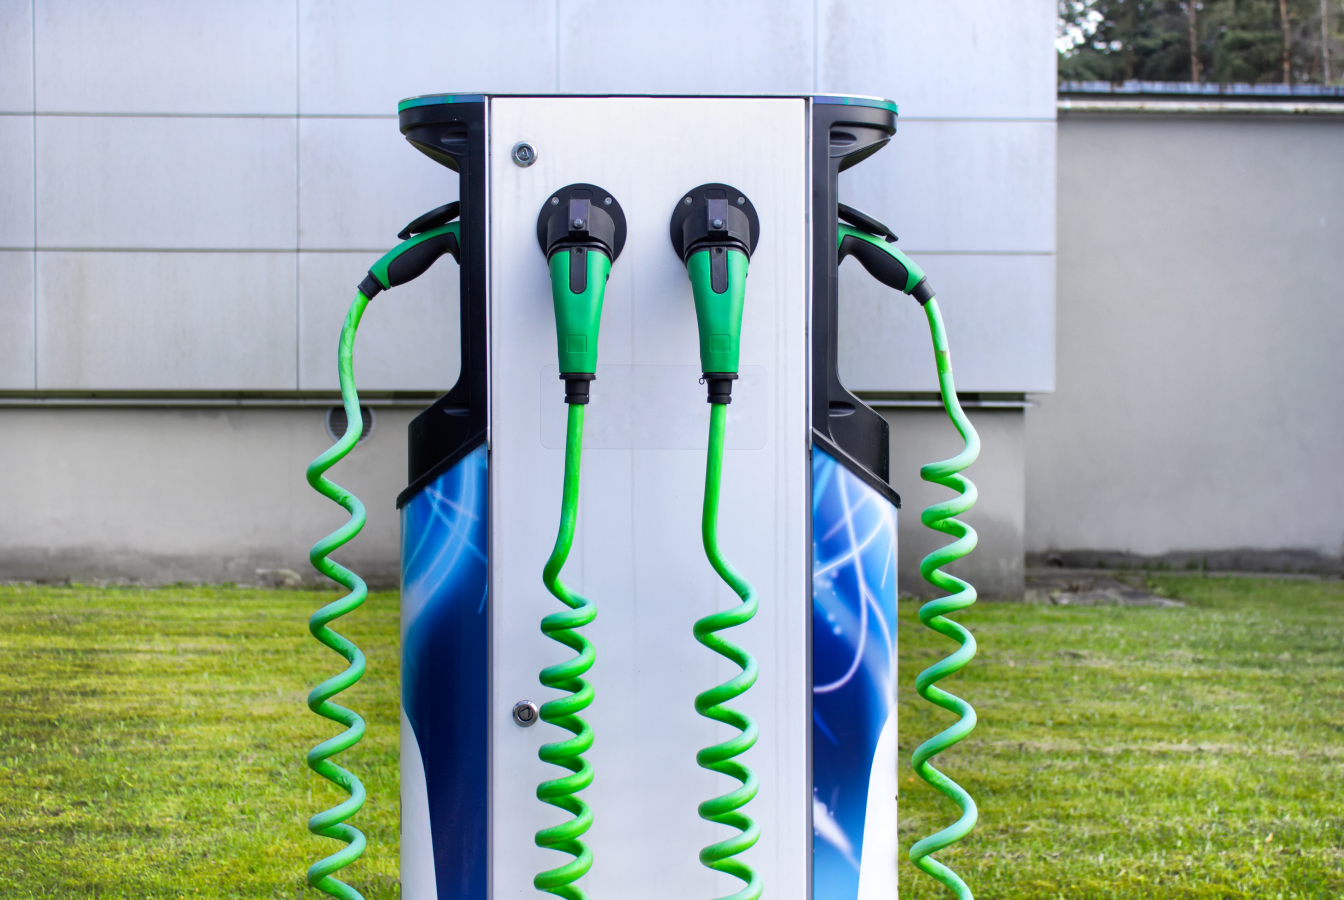 An electric vehicle charging station in Norway